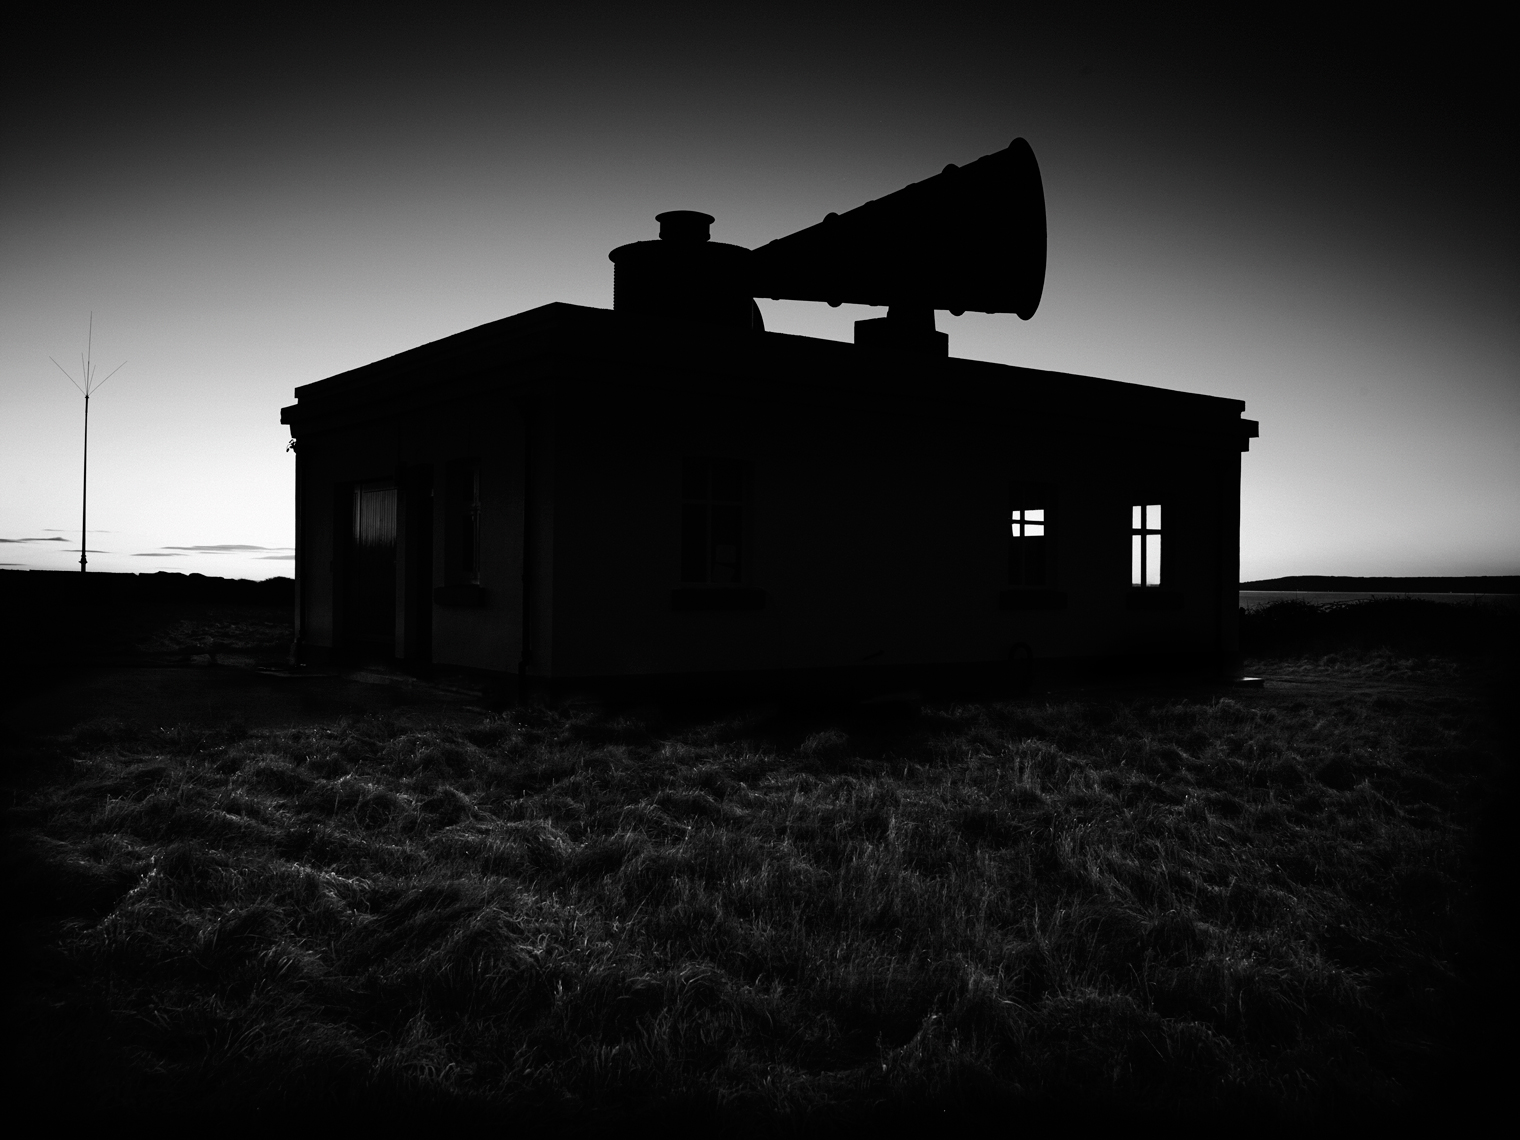 Jon Wyatt Photography - Fog Signal Horn at Nash Point Lighthouse, South Wales